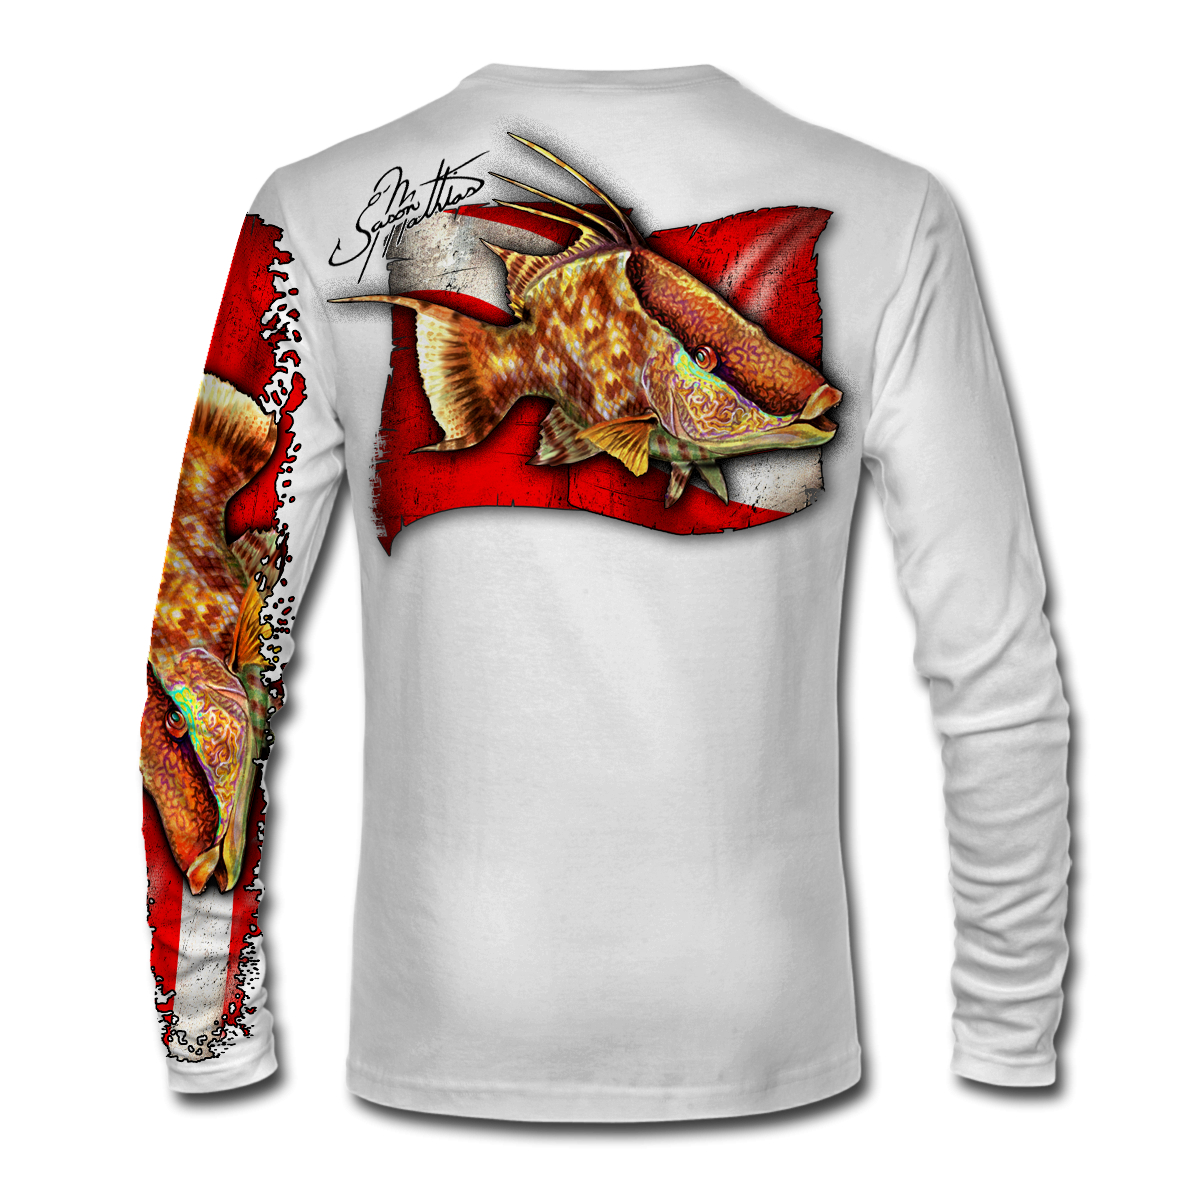 jason-mathias-shirts-white-apparel-gear-hogfish-dive-performance.png